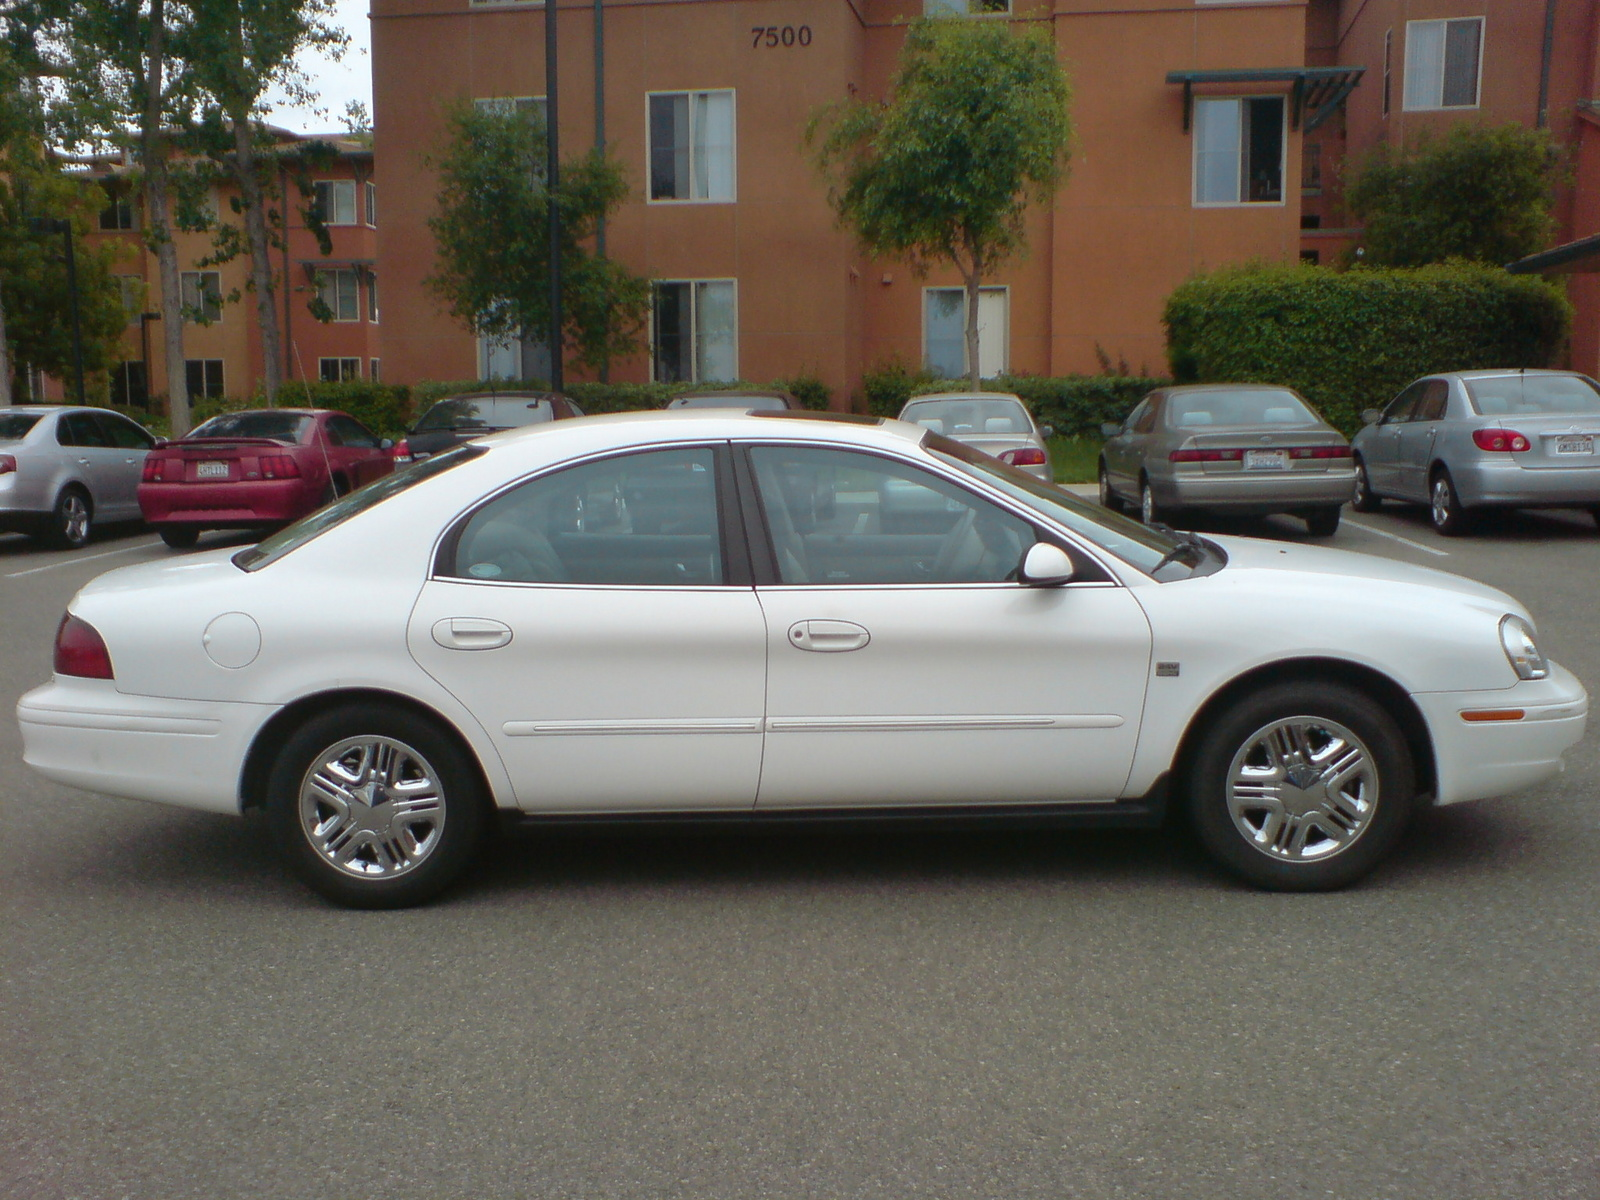 Mercury Sable Ls Premium Pic on On A 2000 Lincoln Ls Suspension Problems